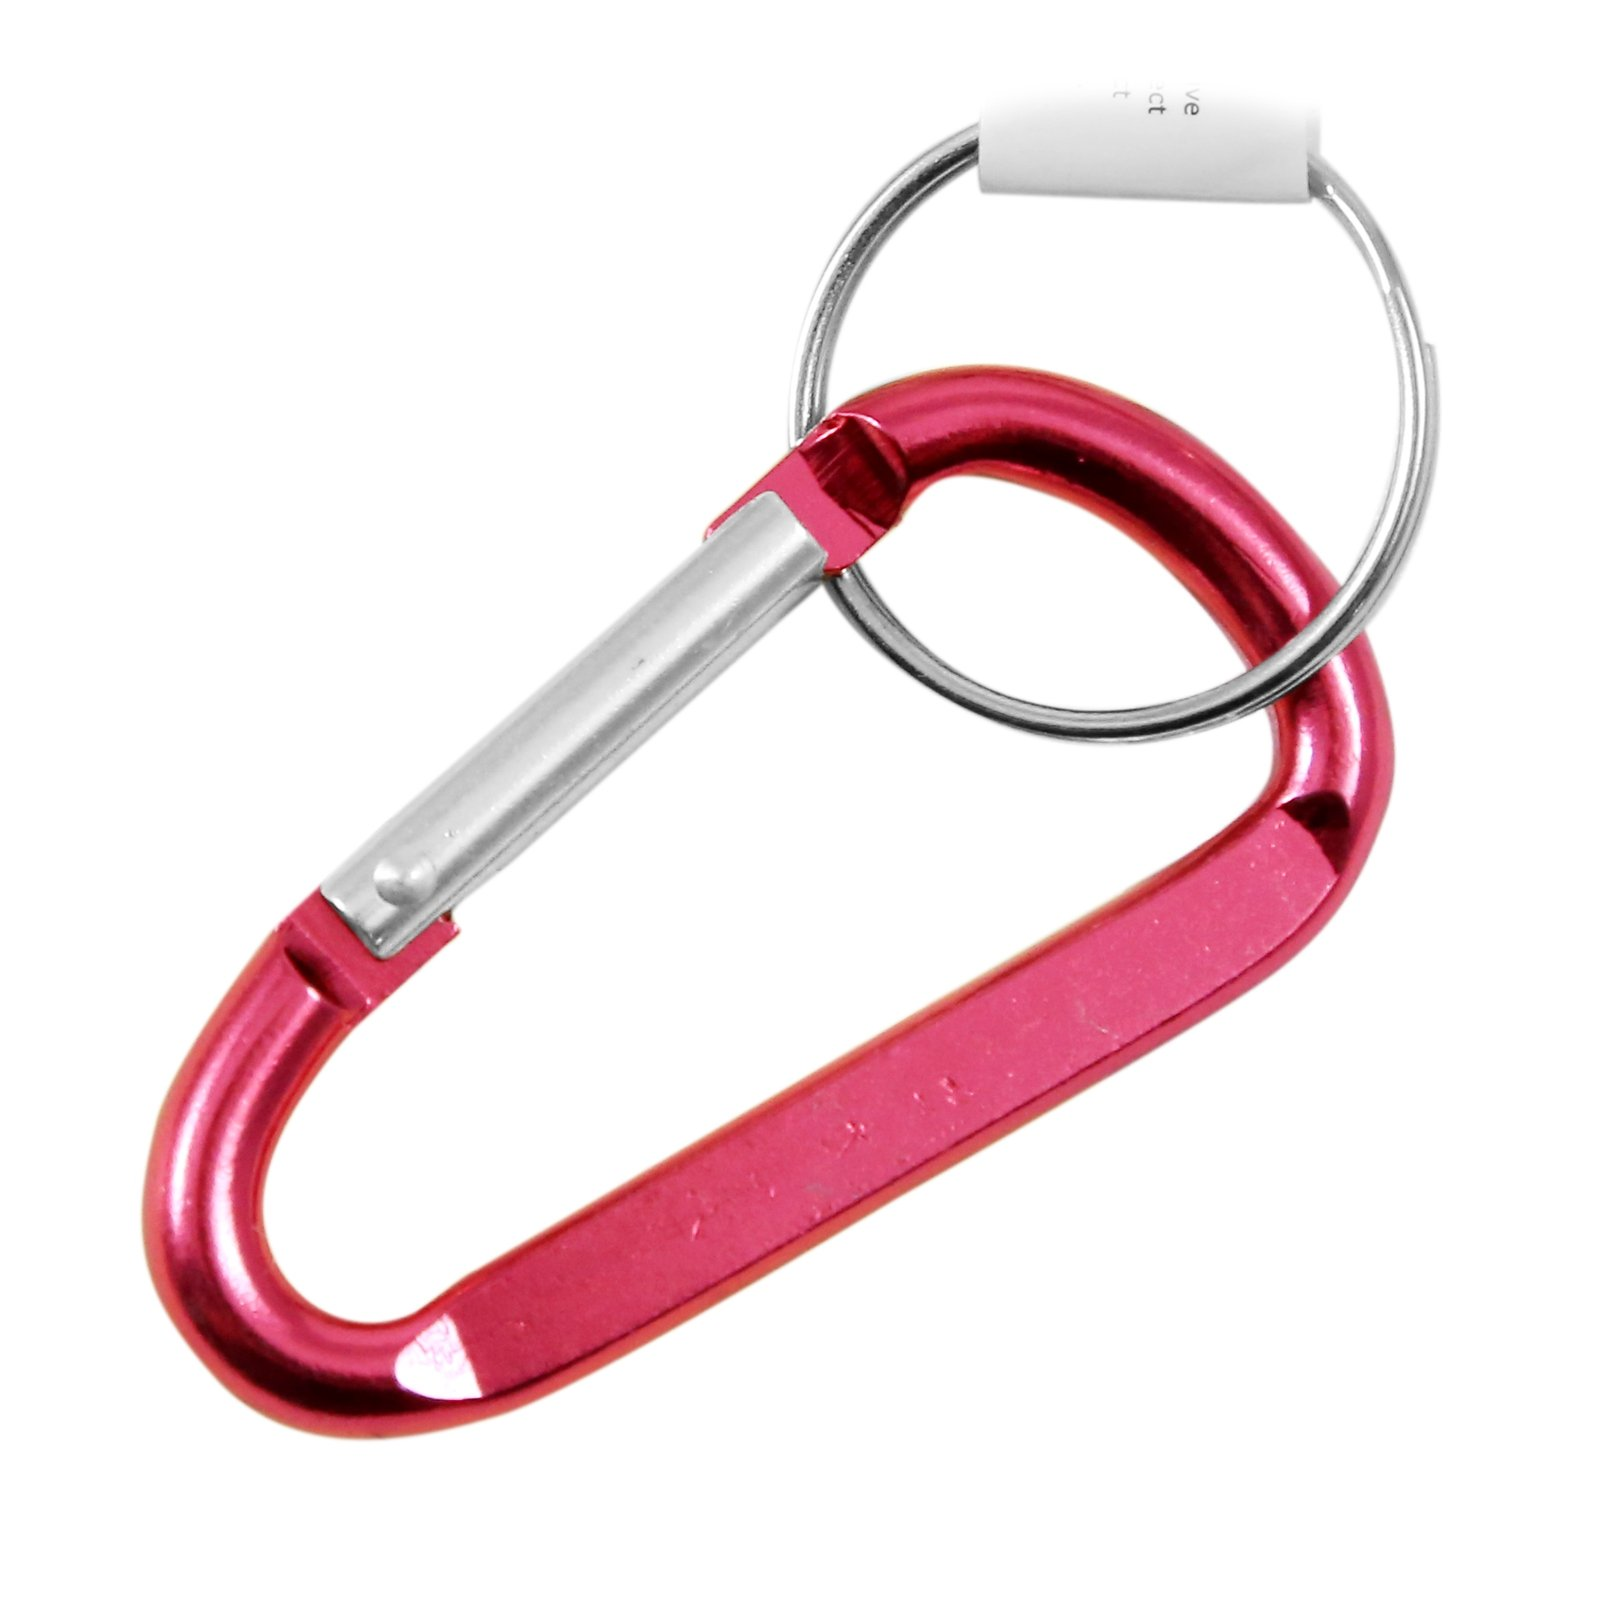 "7mm 2.75"" Medium Carabiner Key Chain - Pink"